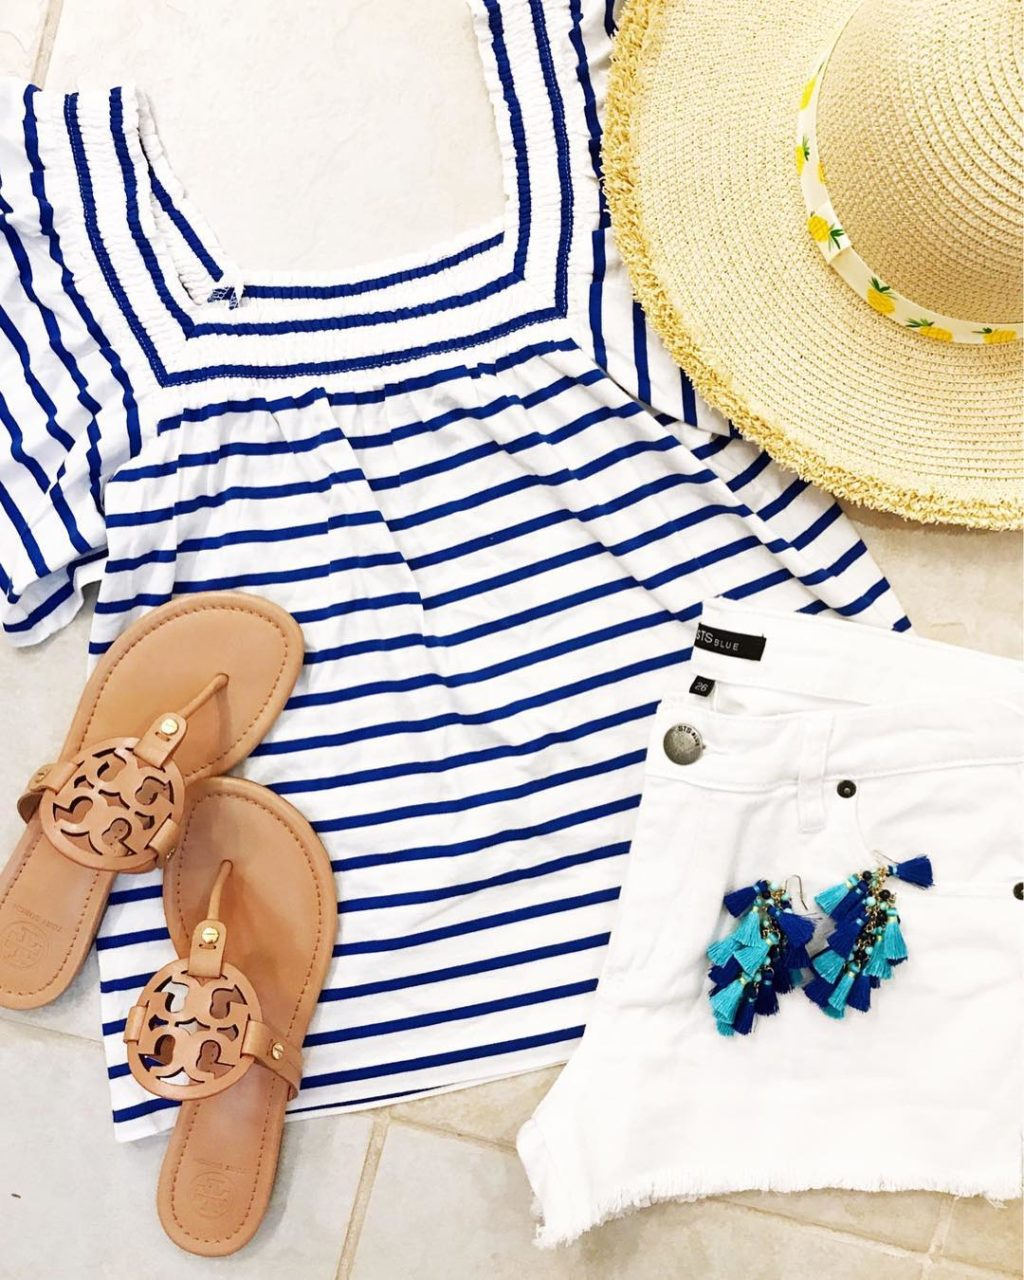 jcrew striped ruffle top pineapple straw hat